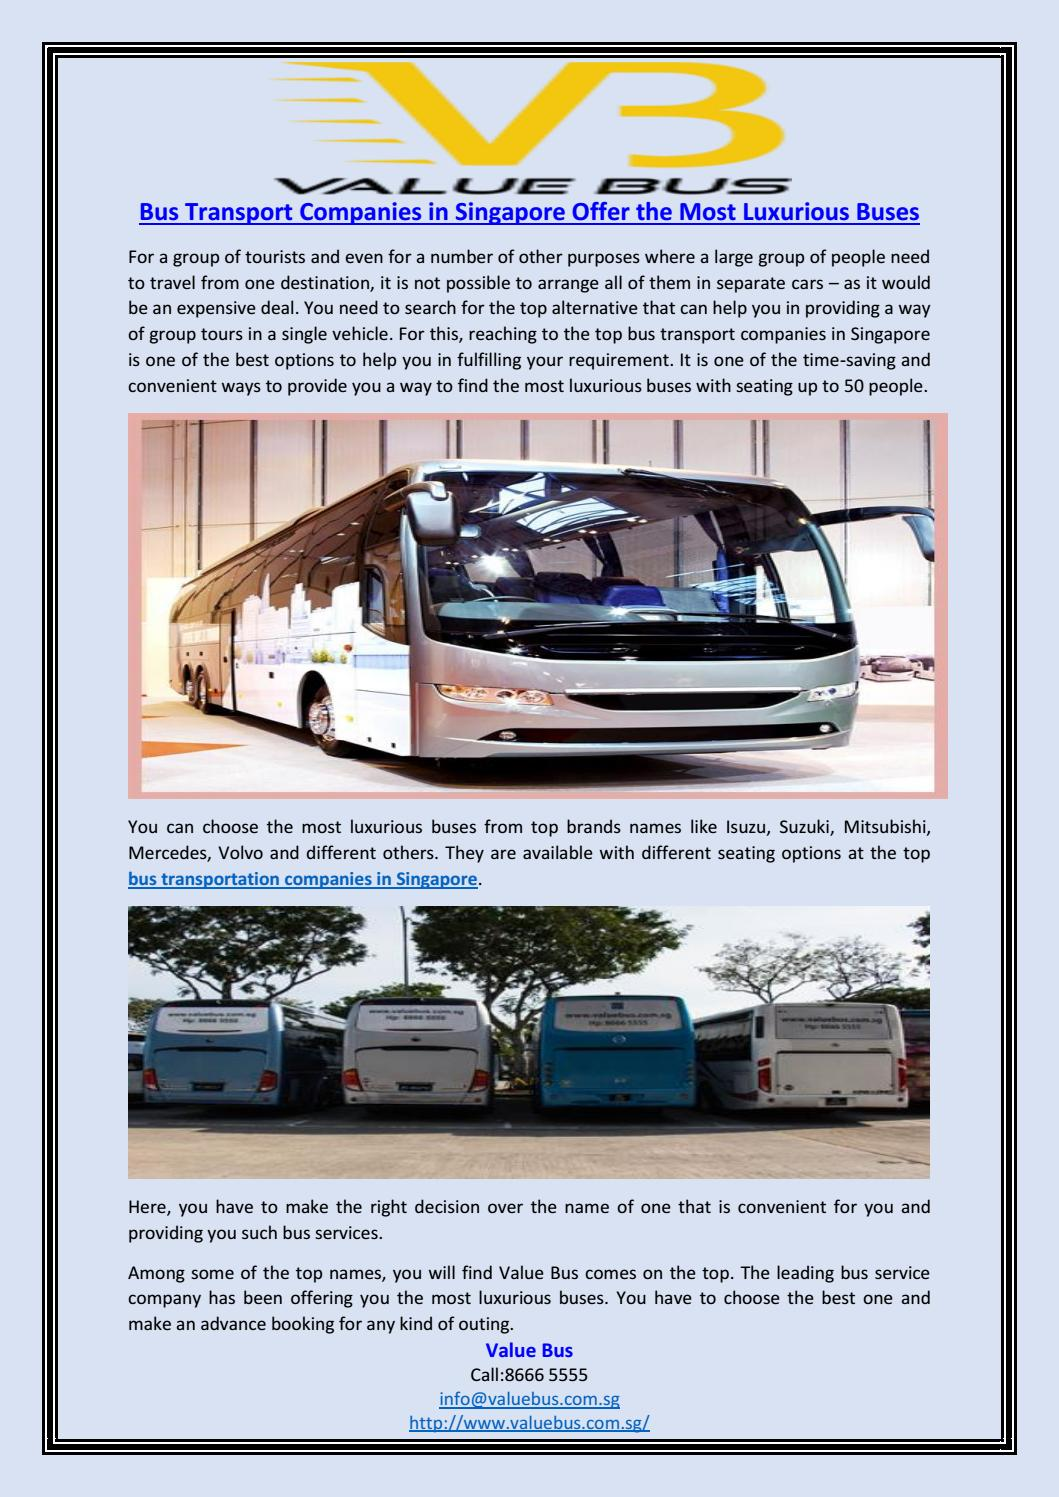 Bus transport companies in singapore offer the most luxurious buses